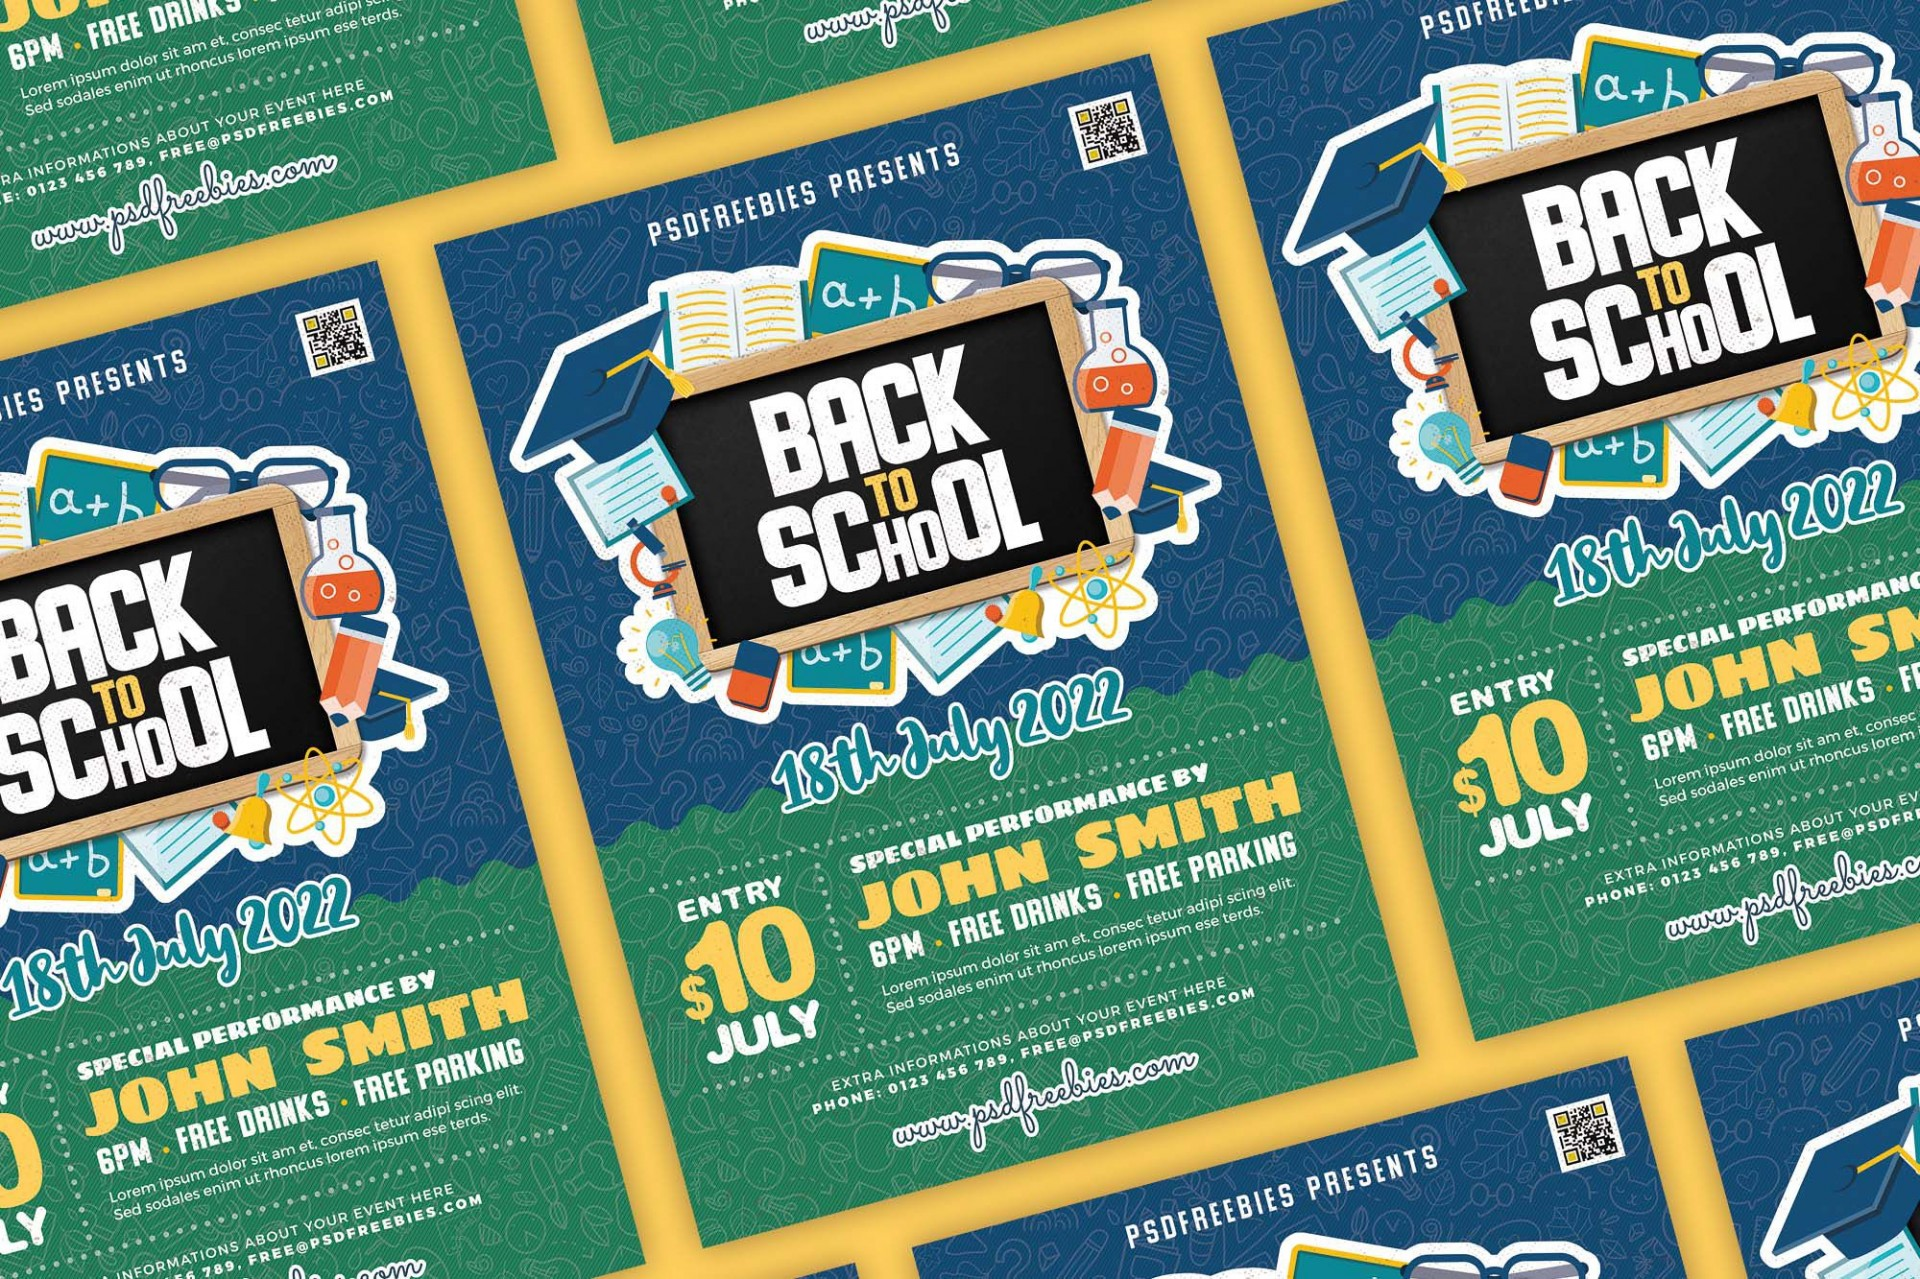 002 Formidable Free School Flyer Template Psd Picture  Brochure Download Back To1920